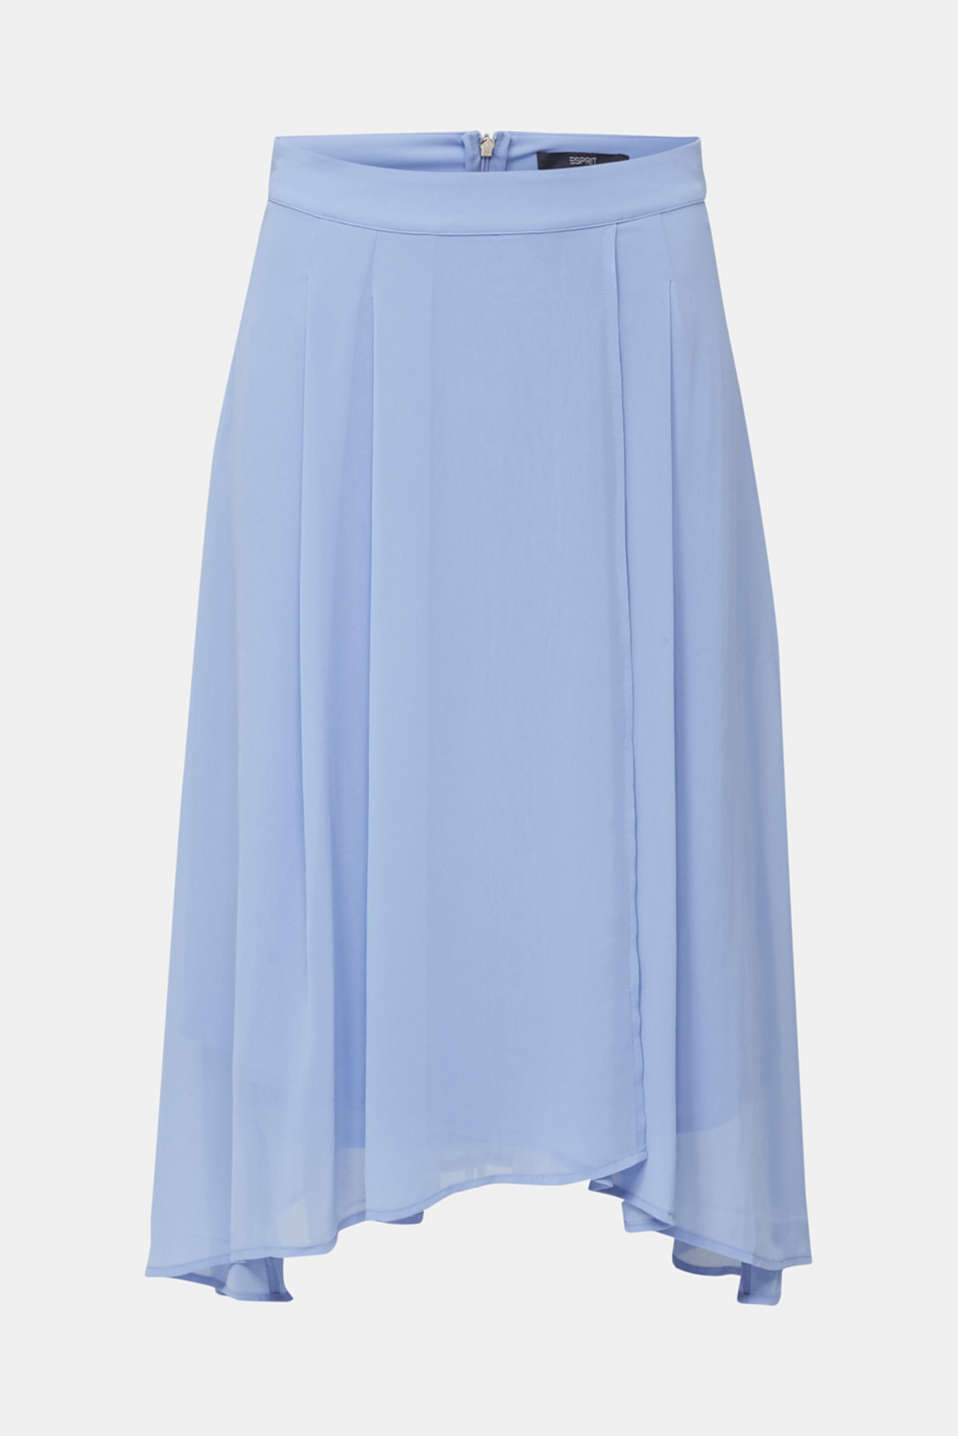 Chiffon skirt with a high-low hem, BLUE LAVENDER, detail image number 7